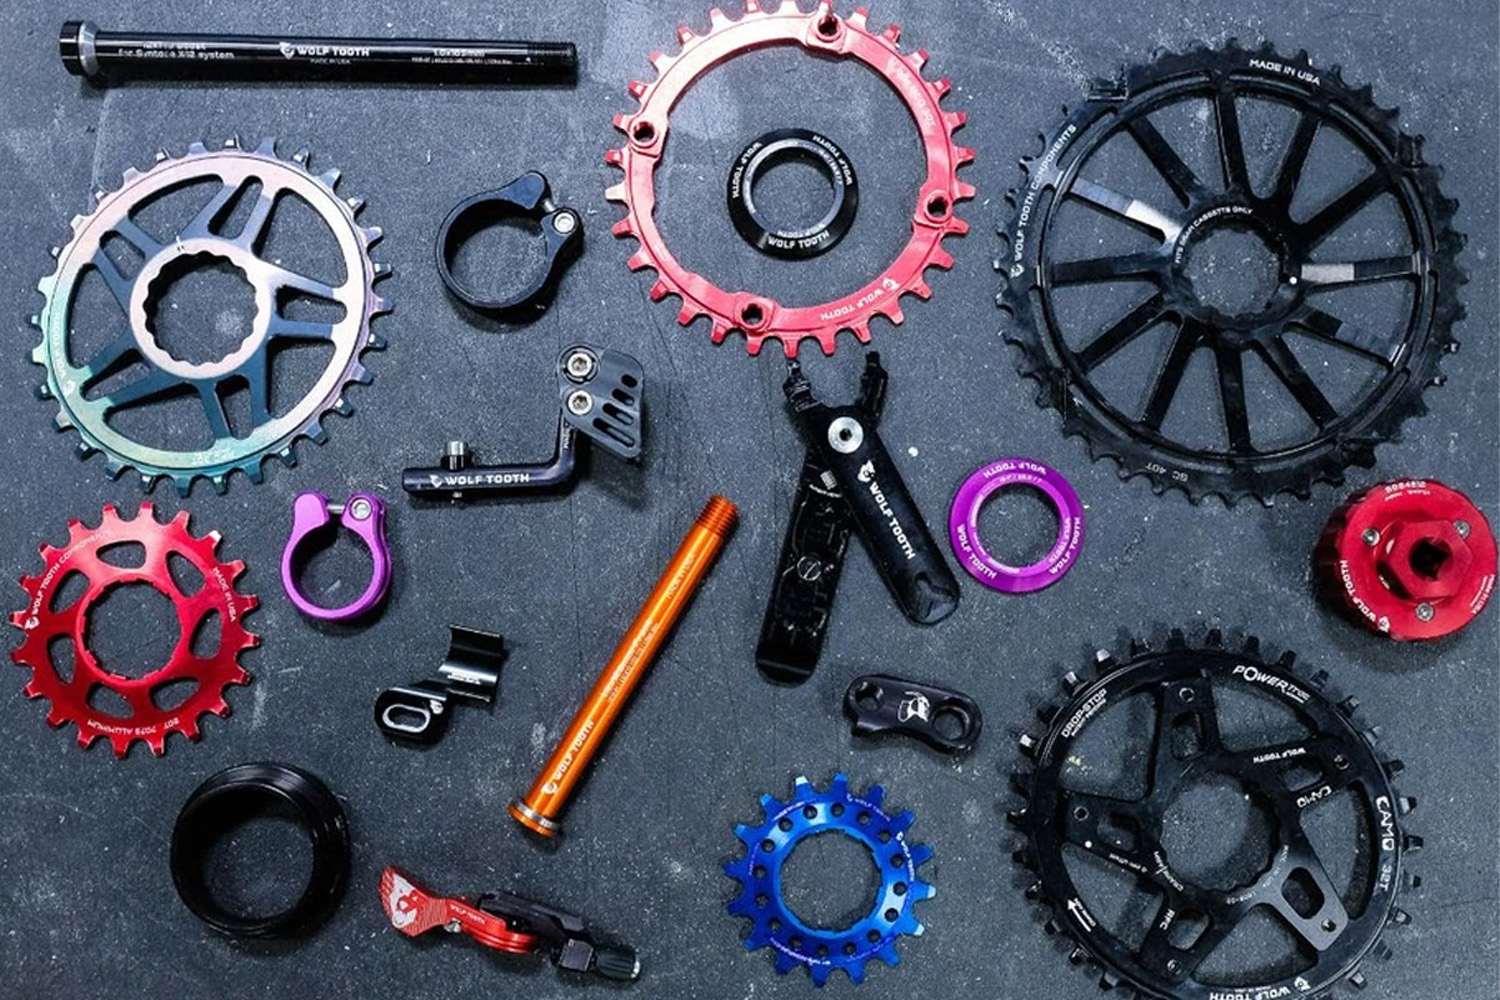 Available Now: Atlas Frames, Silca Multi-tool, Wolf Tooth Components, more